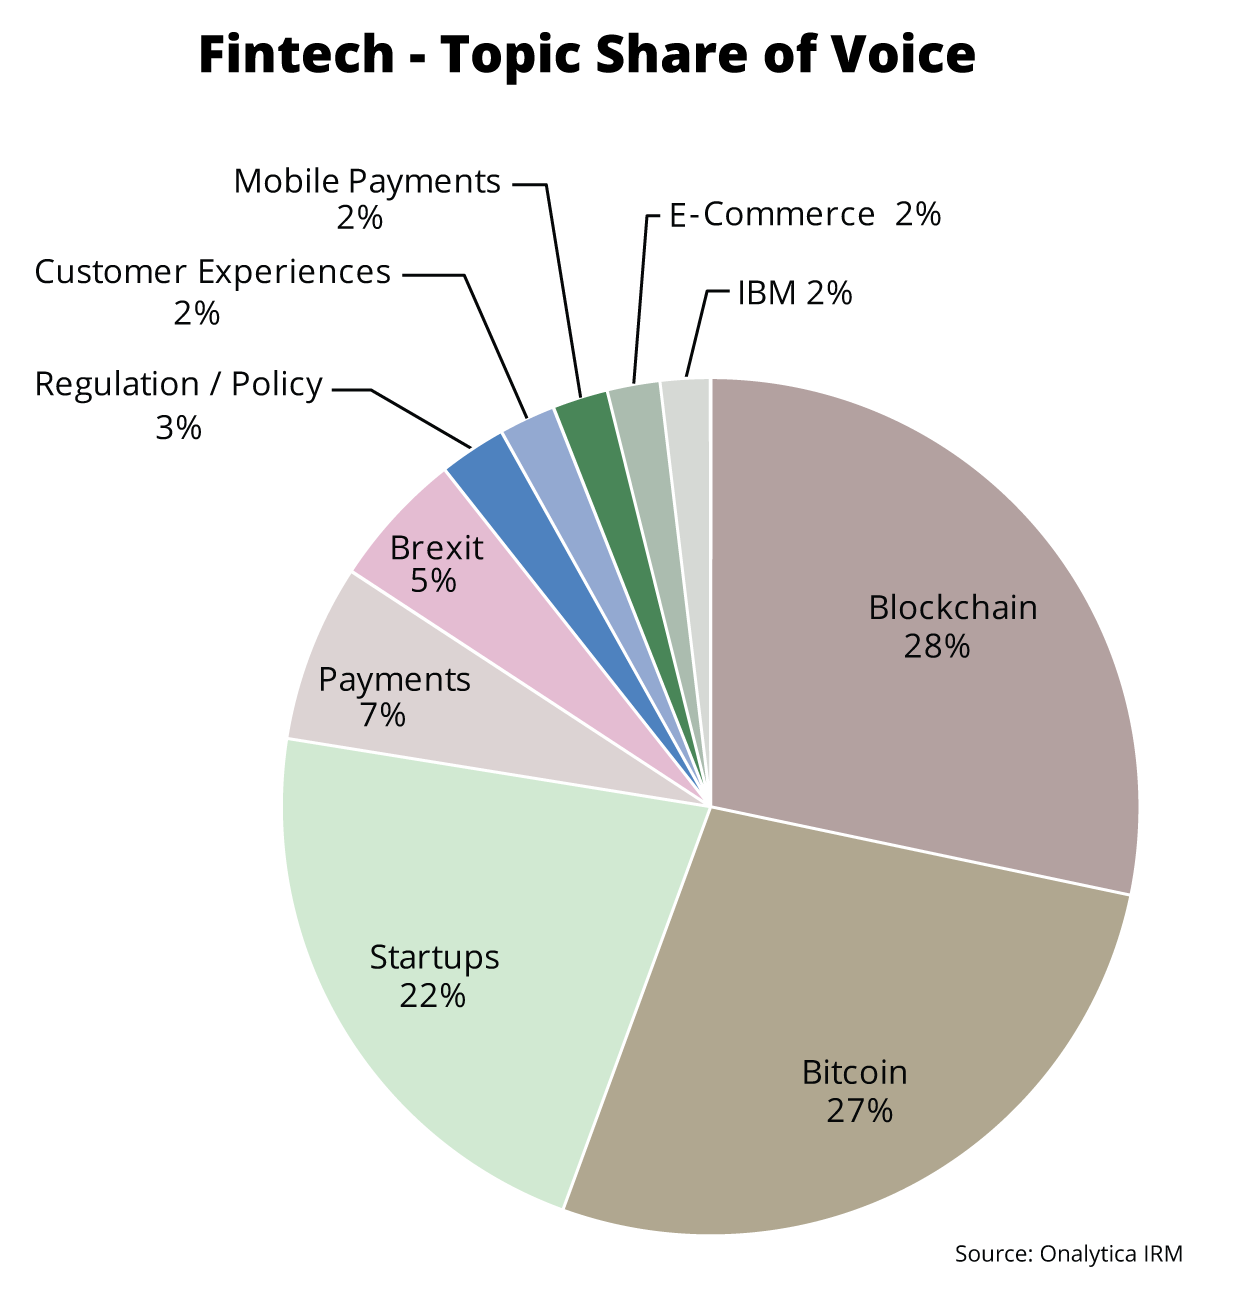 Onalytica - Fintech 2016 top 100 influencers and brands Topic Share of Voice